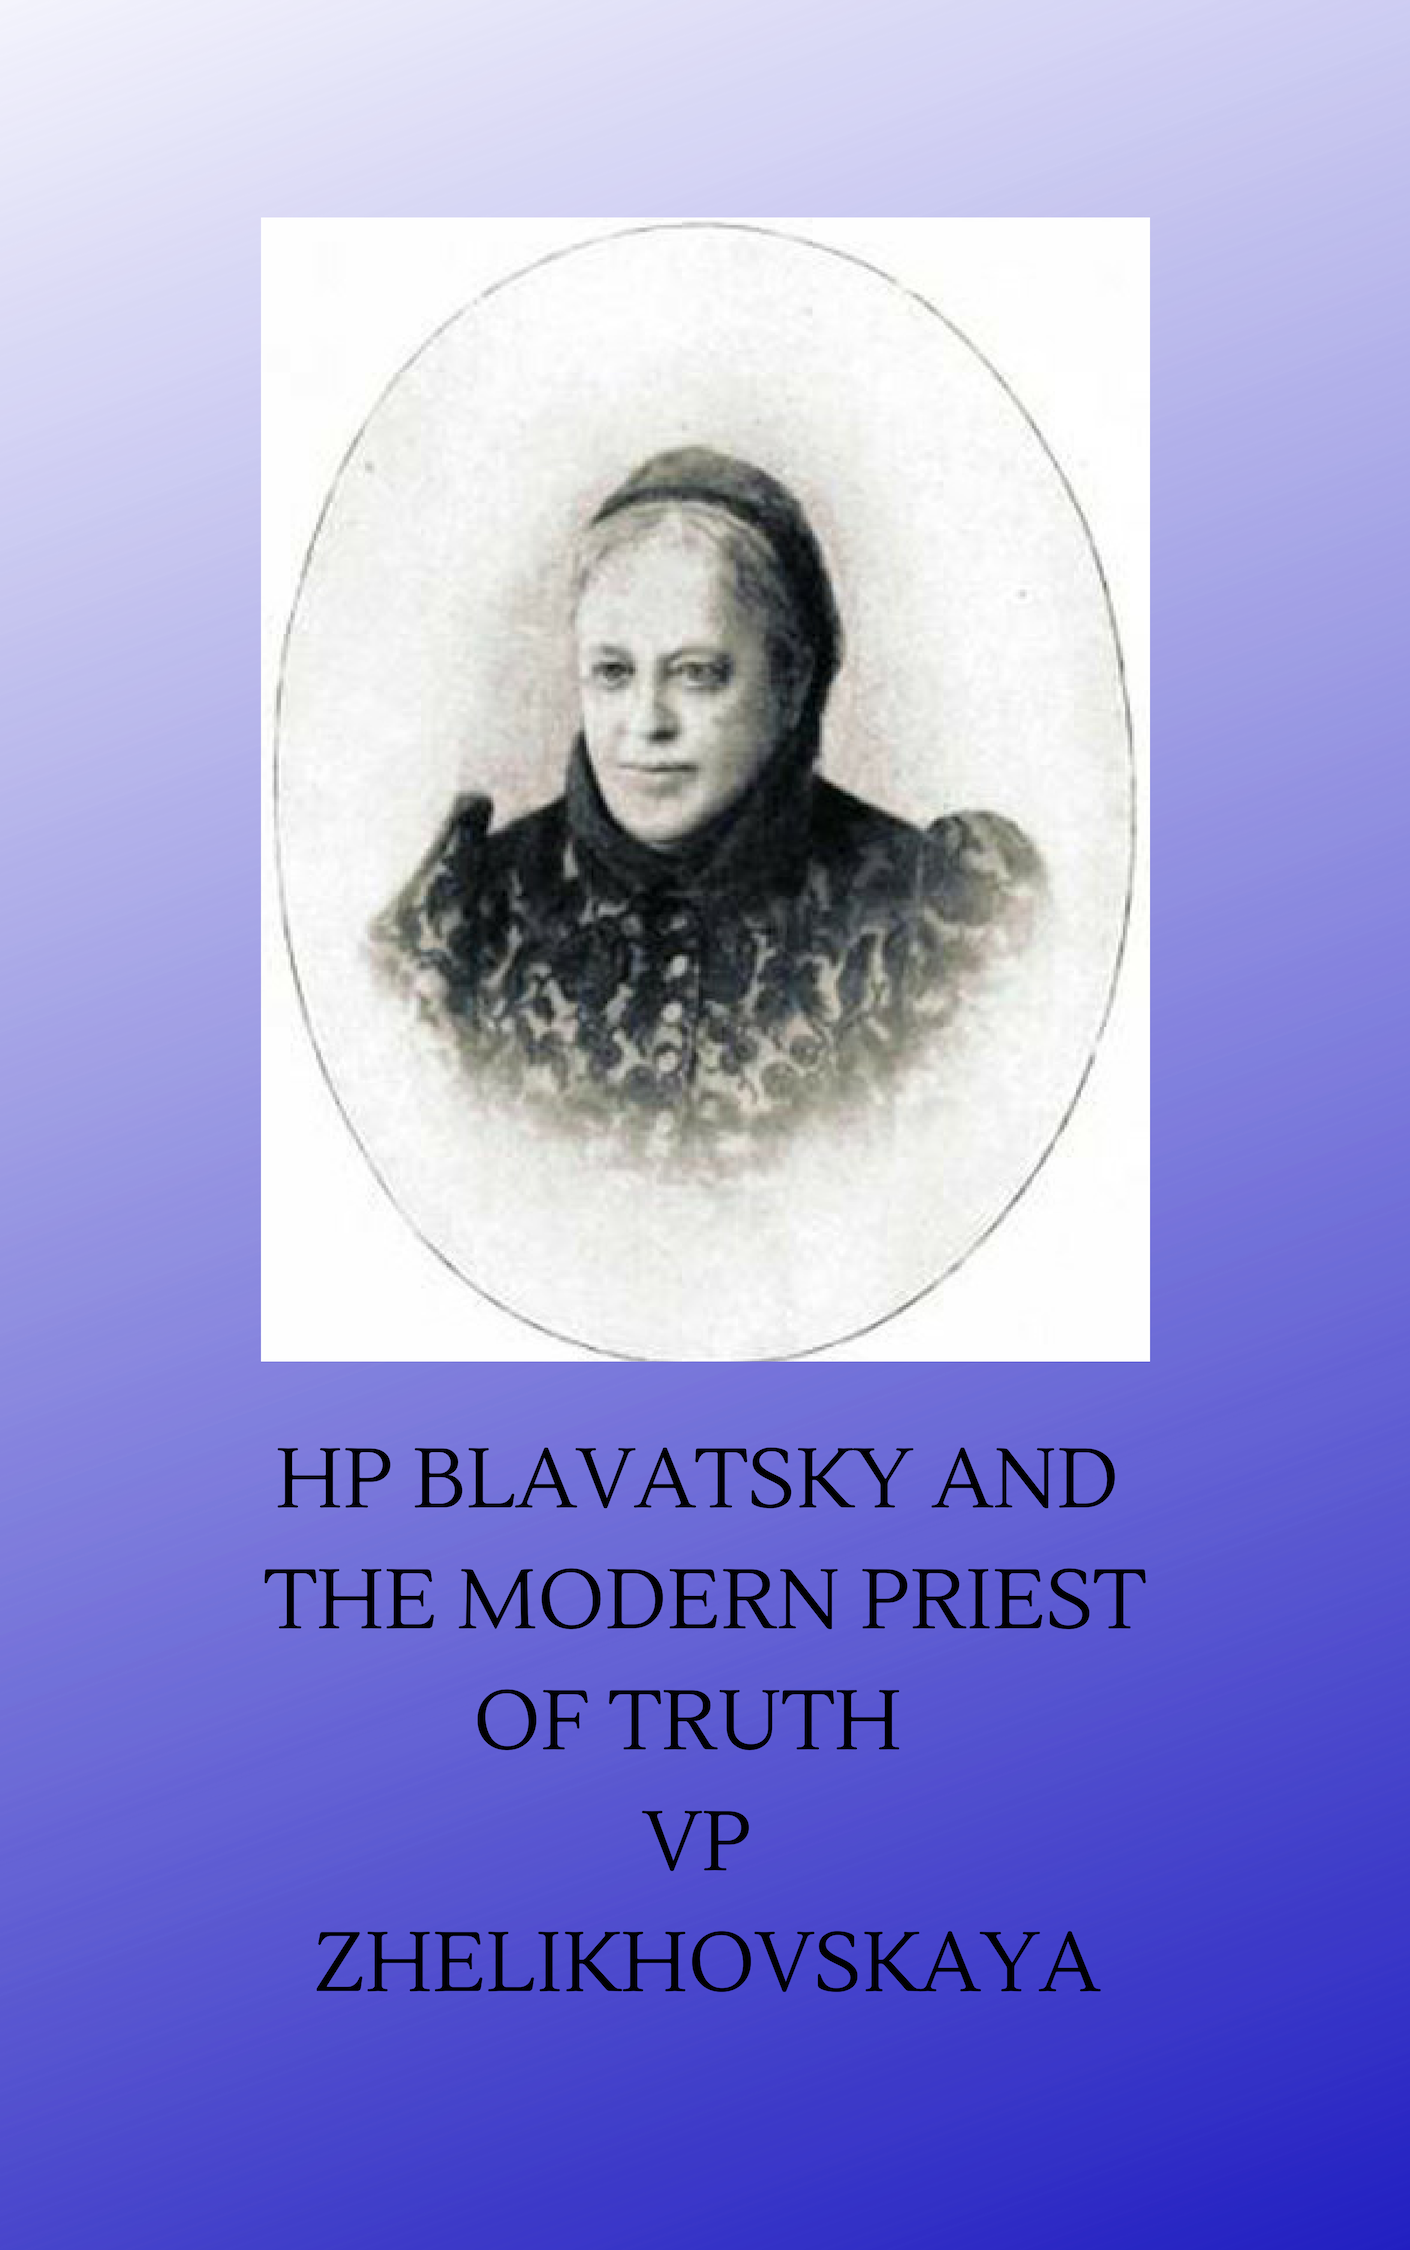 HP Blavatsky and the Modern Priest of Truth: Reply of Mrs. Ygrek (V.P. Zhelikhovskaya) to Mr. Vsevolod Solovyov ch. 8-11